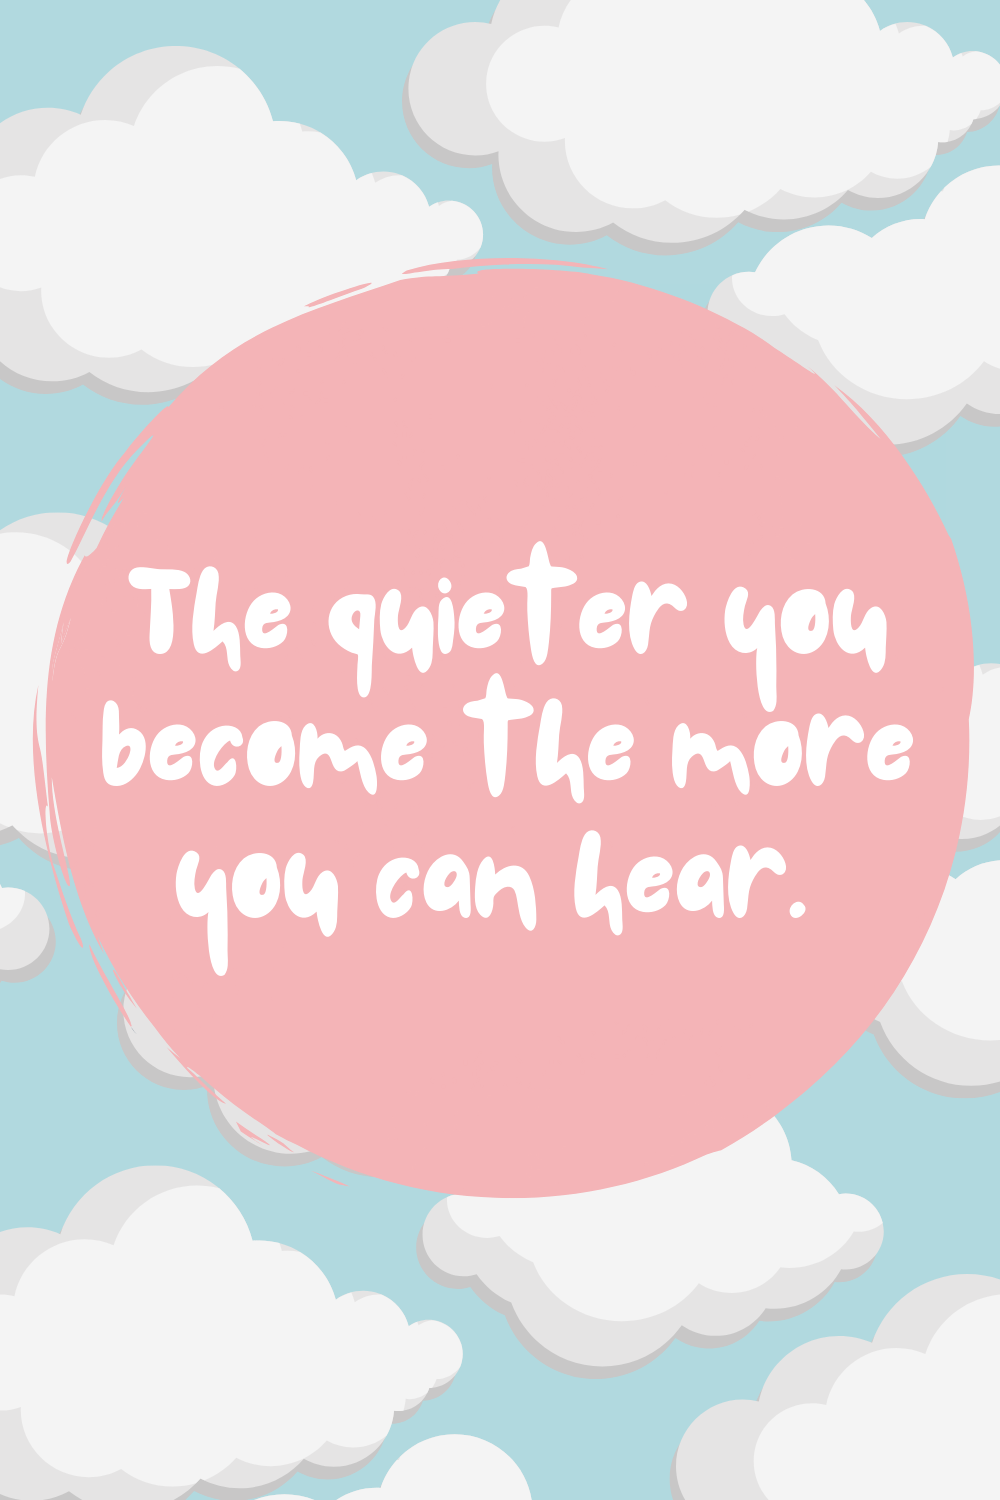 Quotes for Kids About Quietness